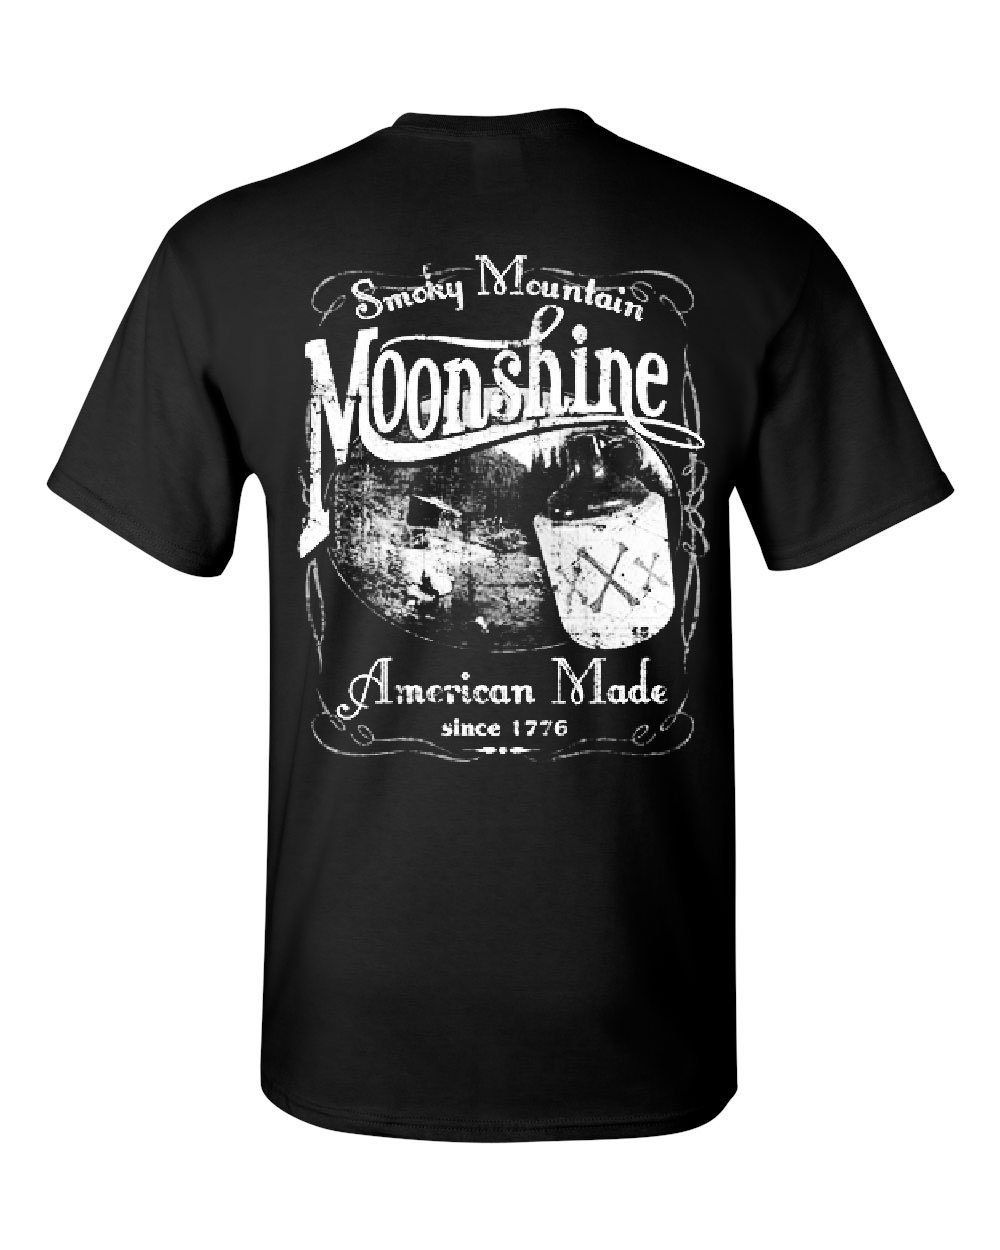 Smoky Mountain Moonshine T-Shirt Tennessee Whiskey Tee Shirt Cool Casual pride t shirt men Unisex Fashion tshirt free shipping image